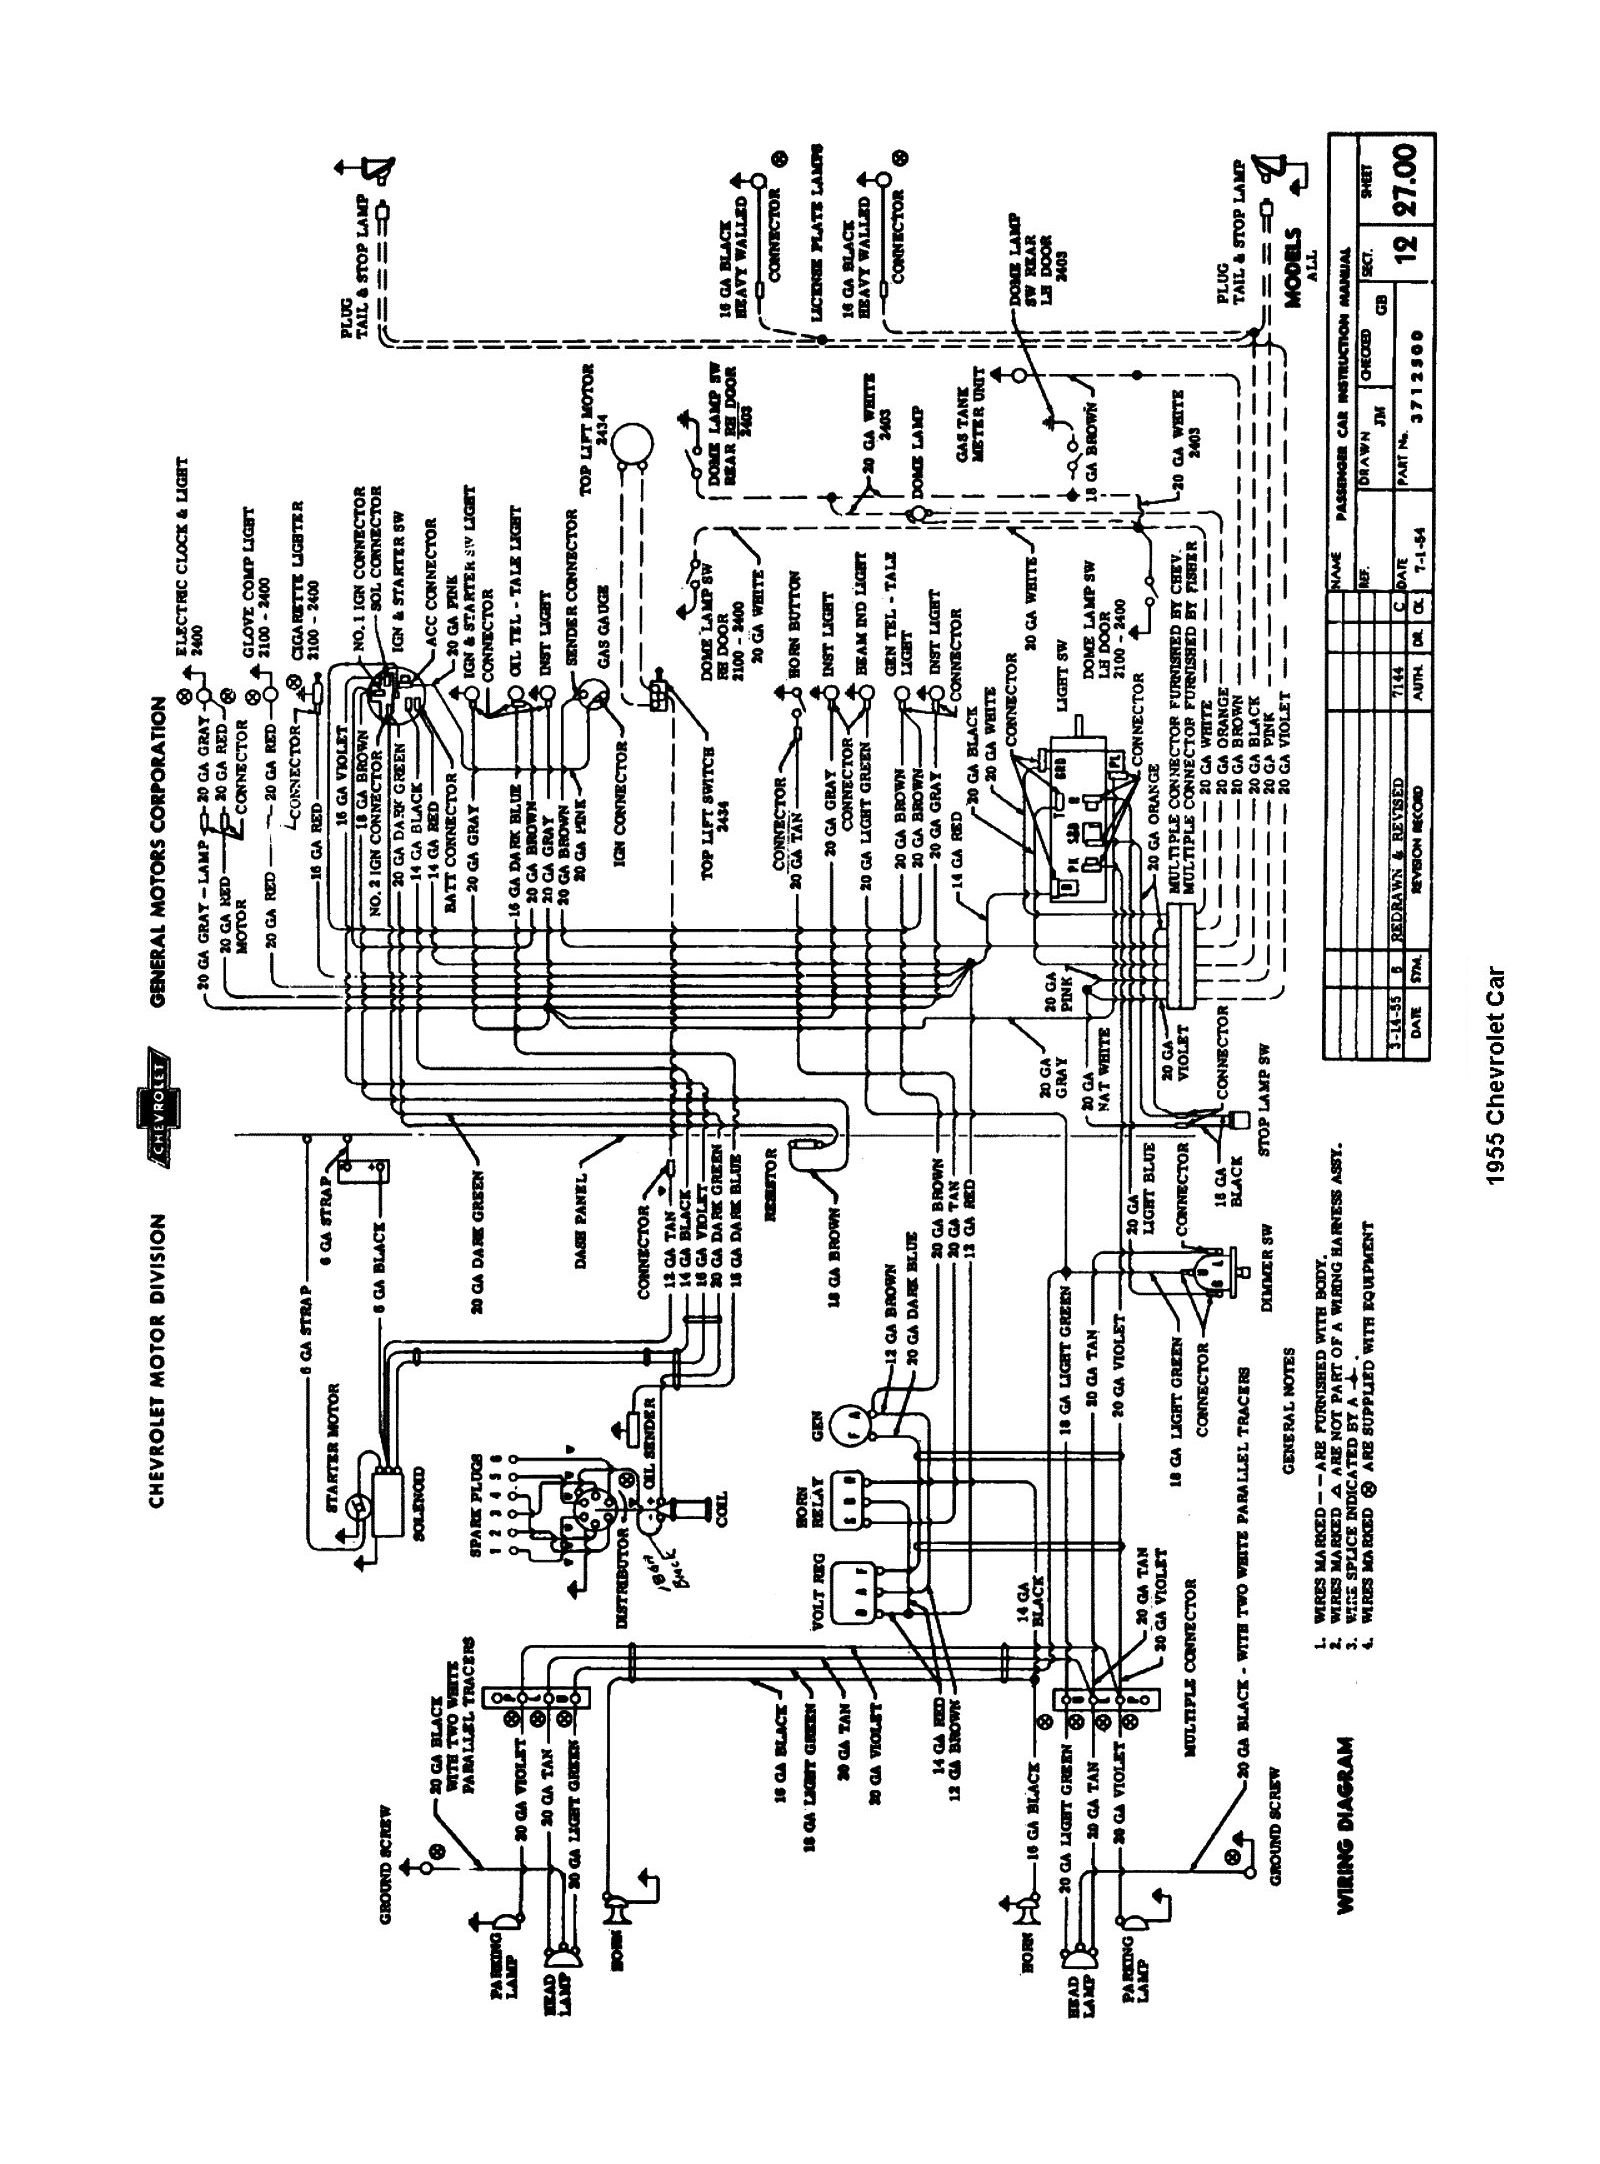 Diagram Besides 1954 Chevy Truck Wiring Diagram Likewise 1966 Chevy